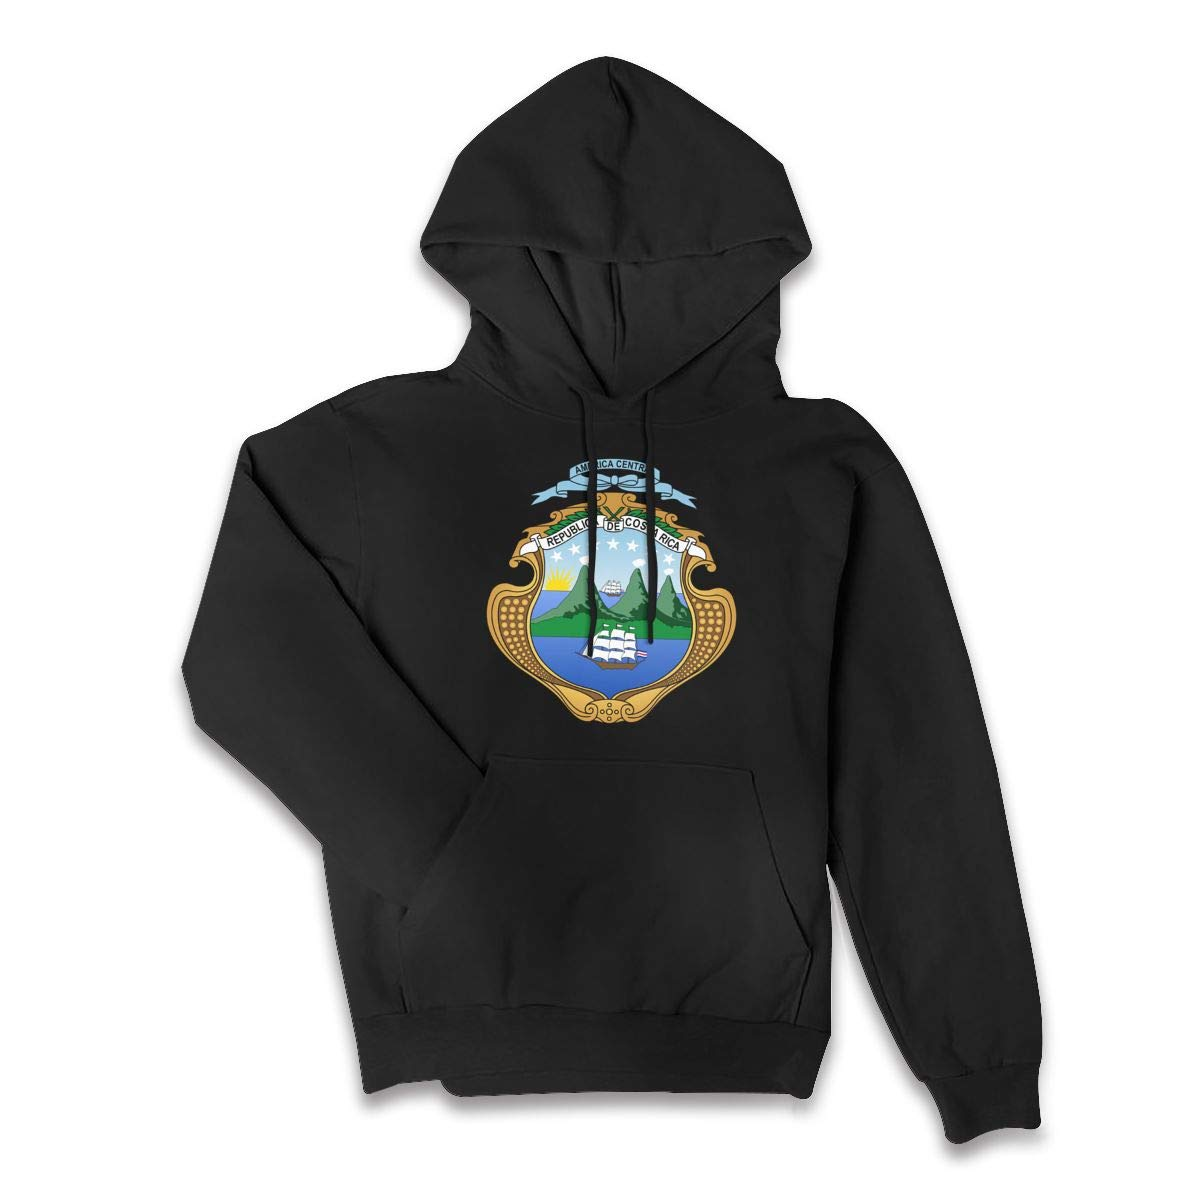 The Costa Rica Flag and Emblem Hoodie Ladies Performance Pullover Tops Hooded Blouse Pullover with Front Pocket